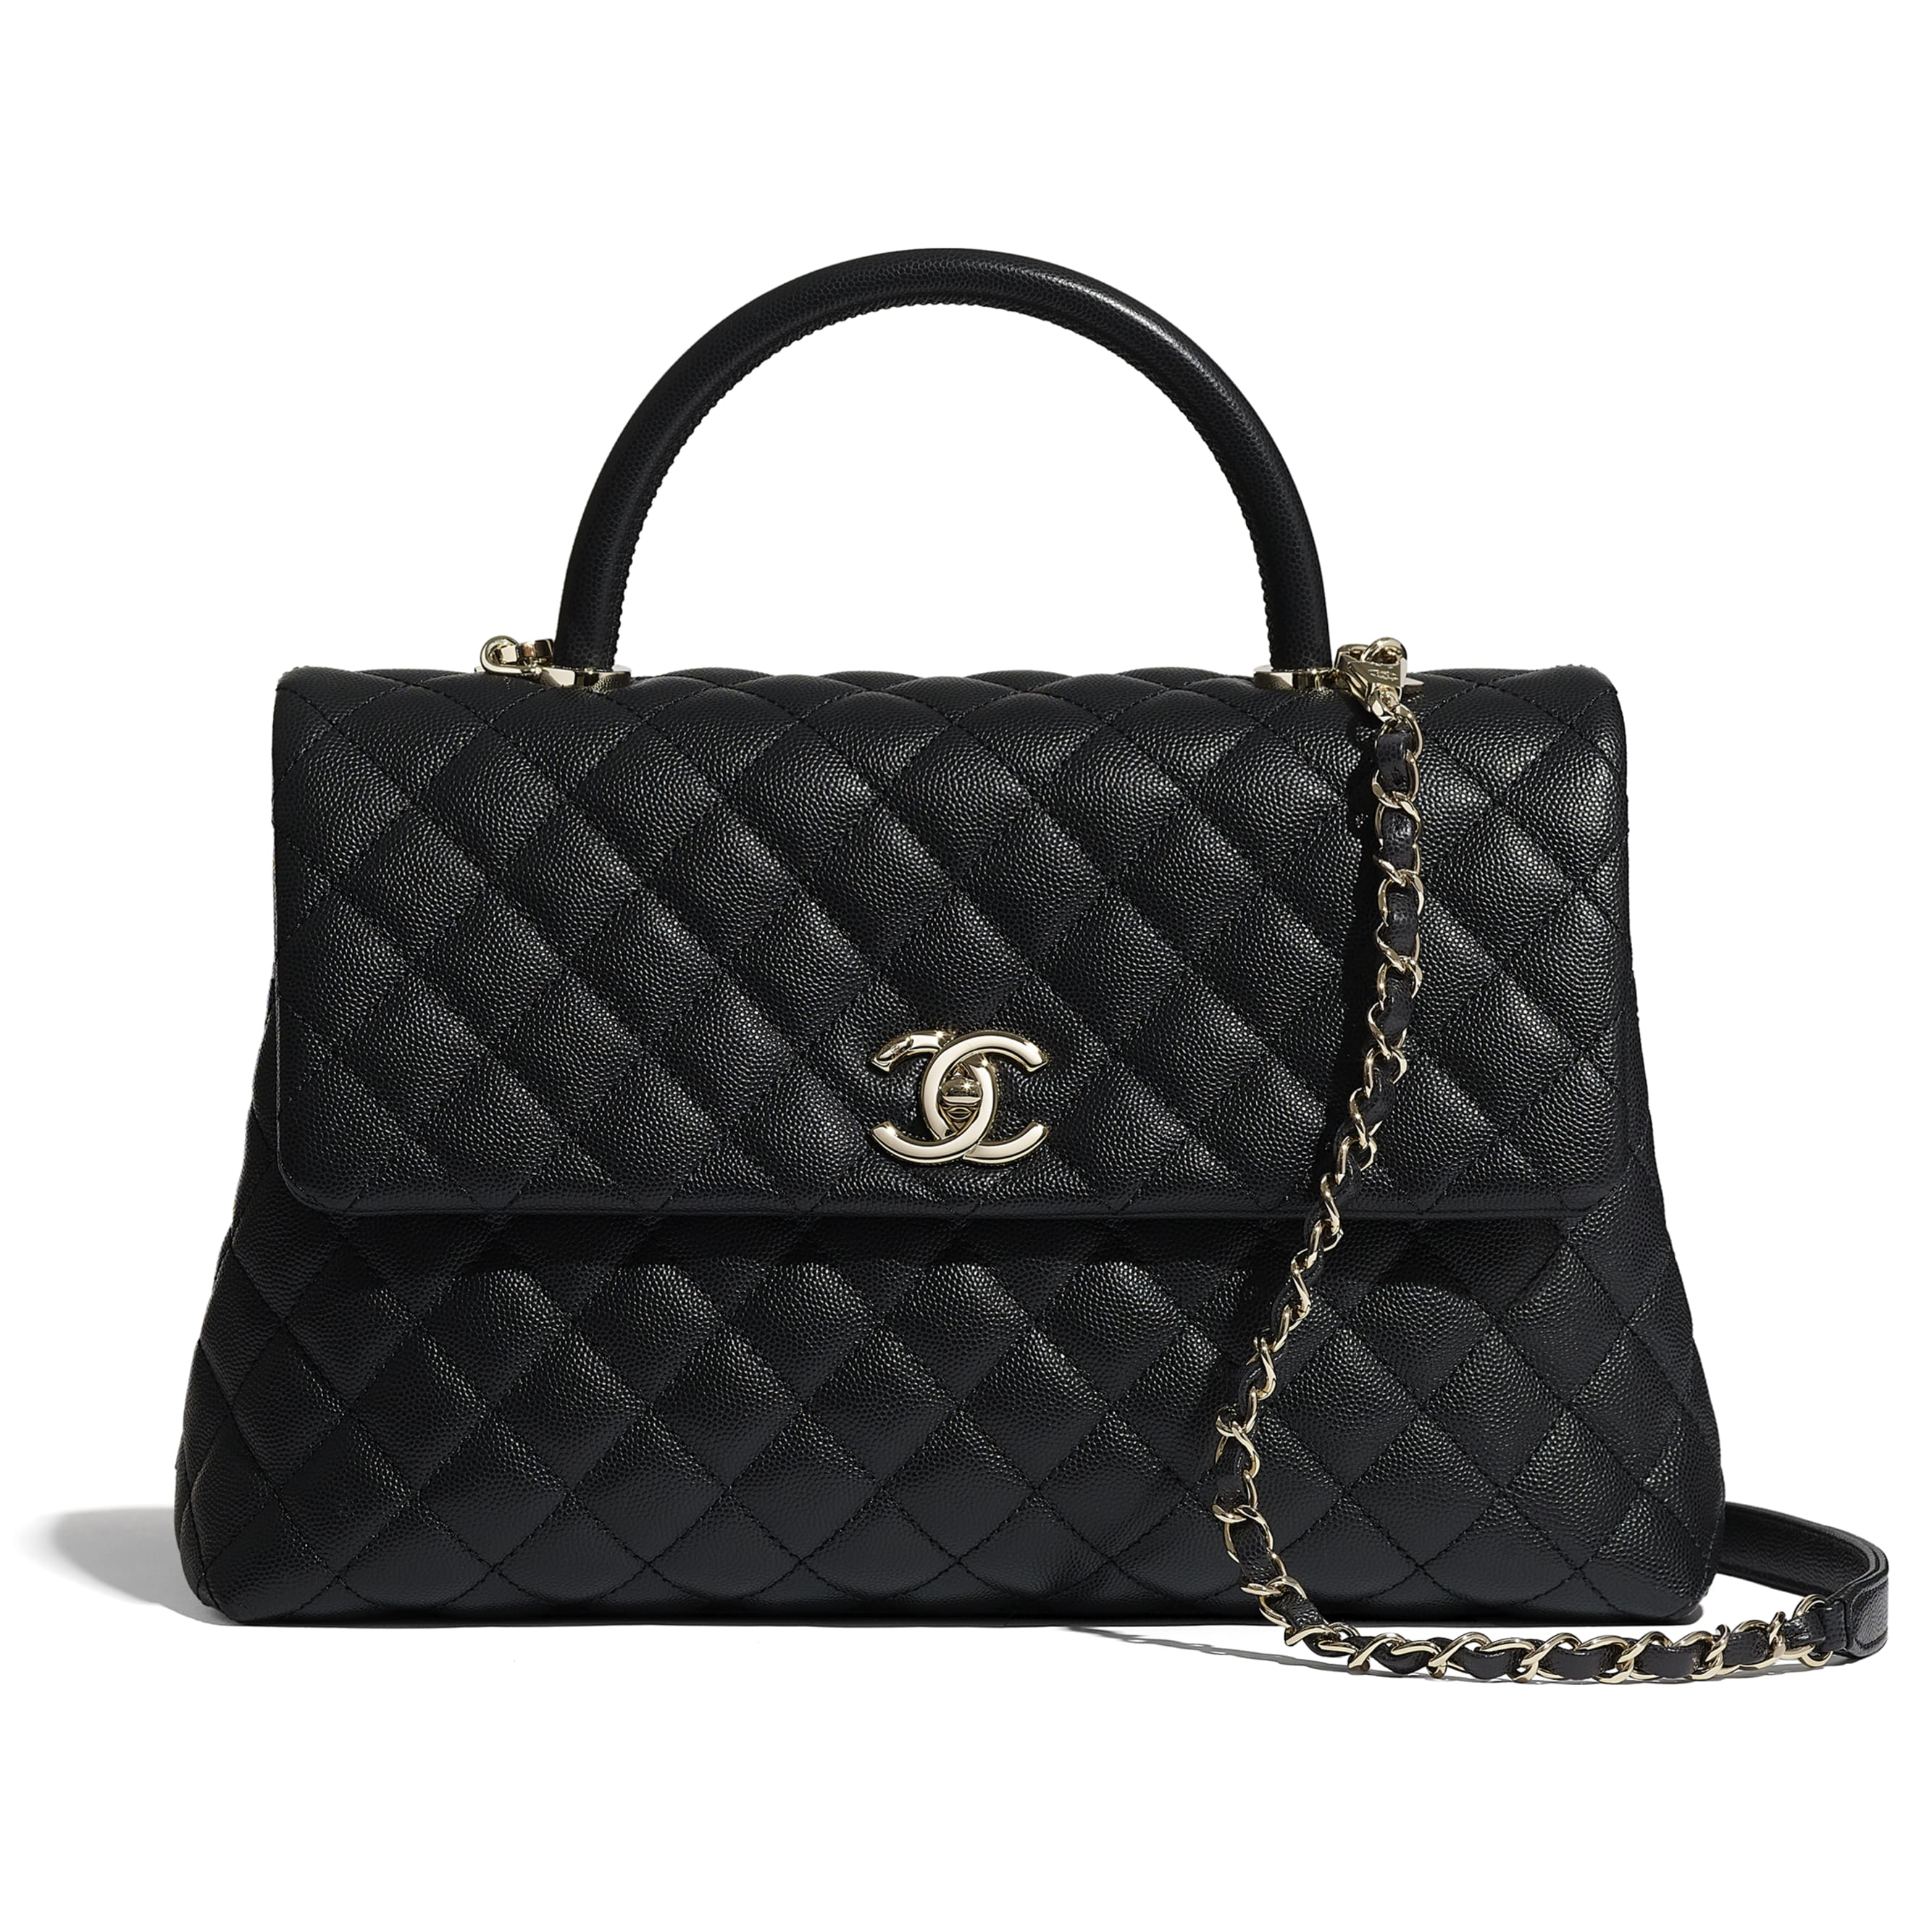 Maxi Flap Bag With Top Handle - Black - Grained Calfskin & Gold-Tone Metal - CHANEL - Default view - see standard sized version